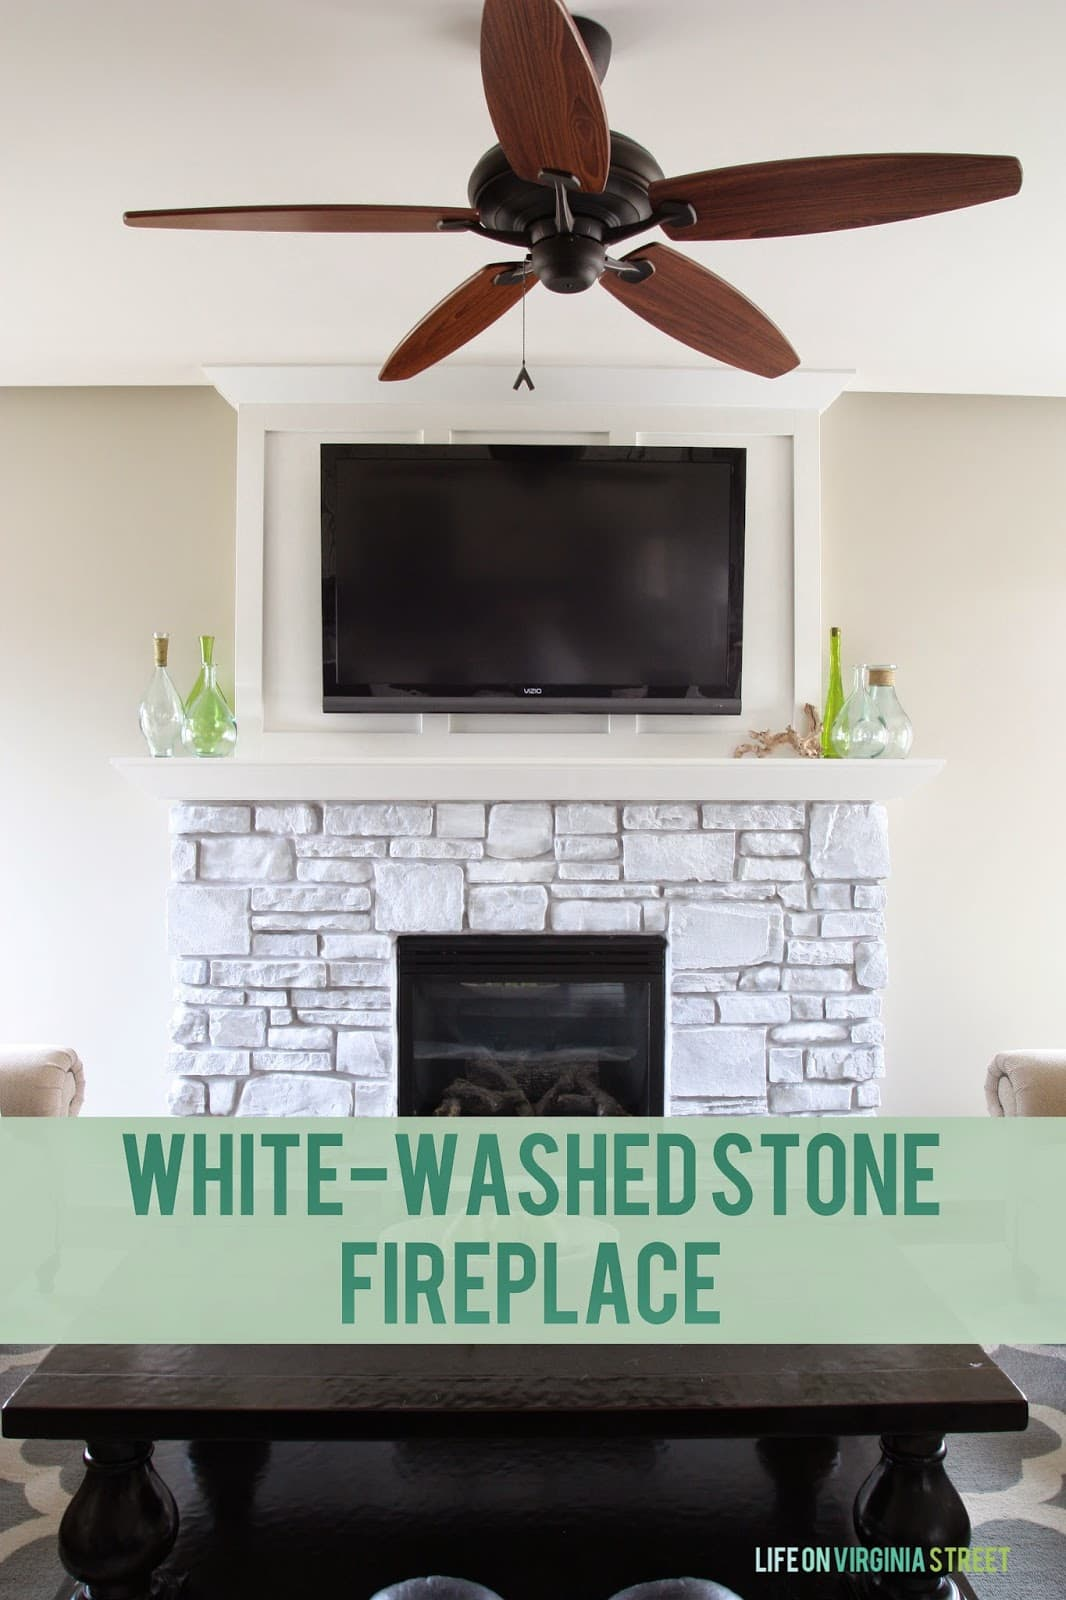 White washed stone fireplace poster.